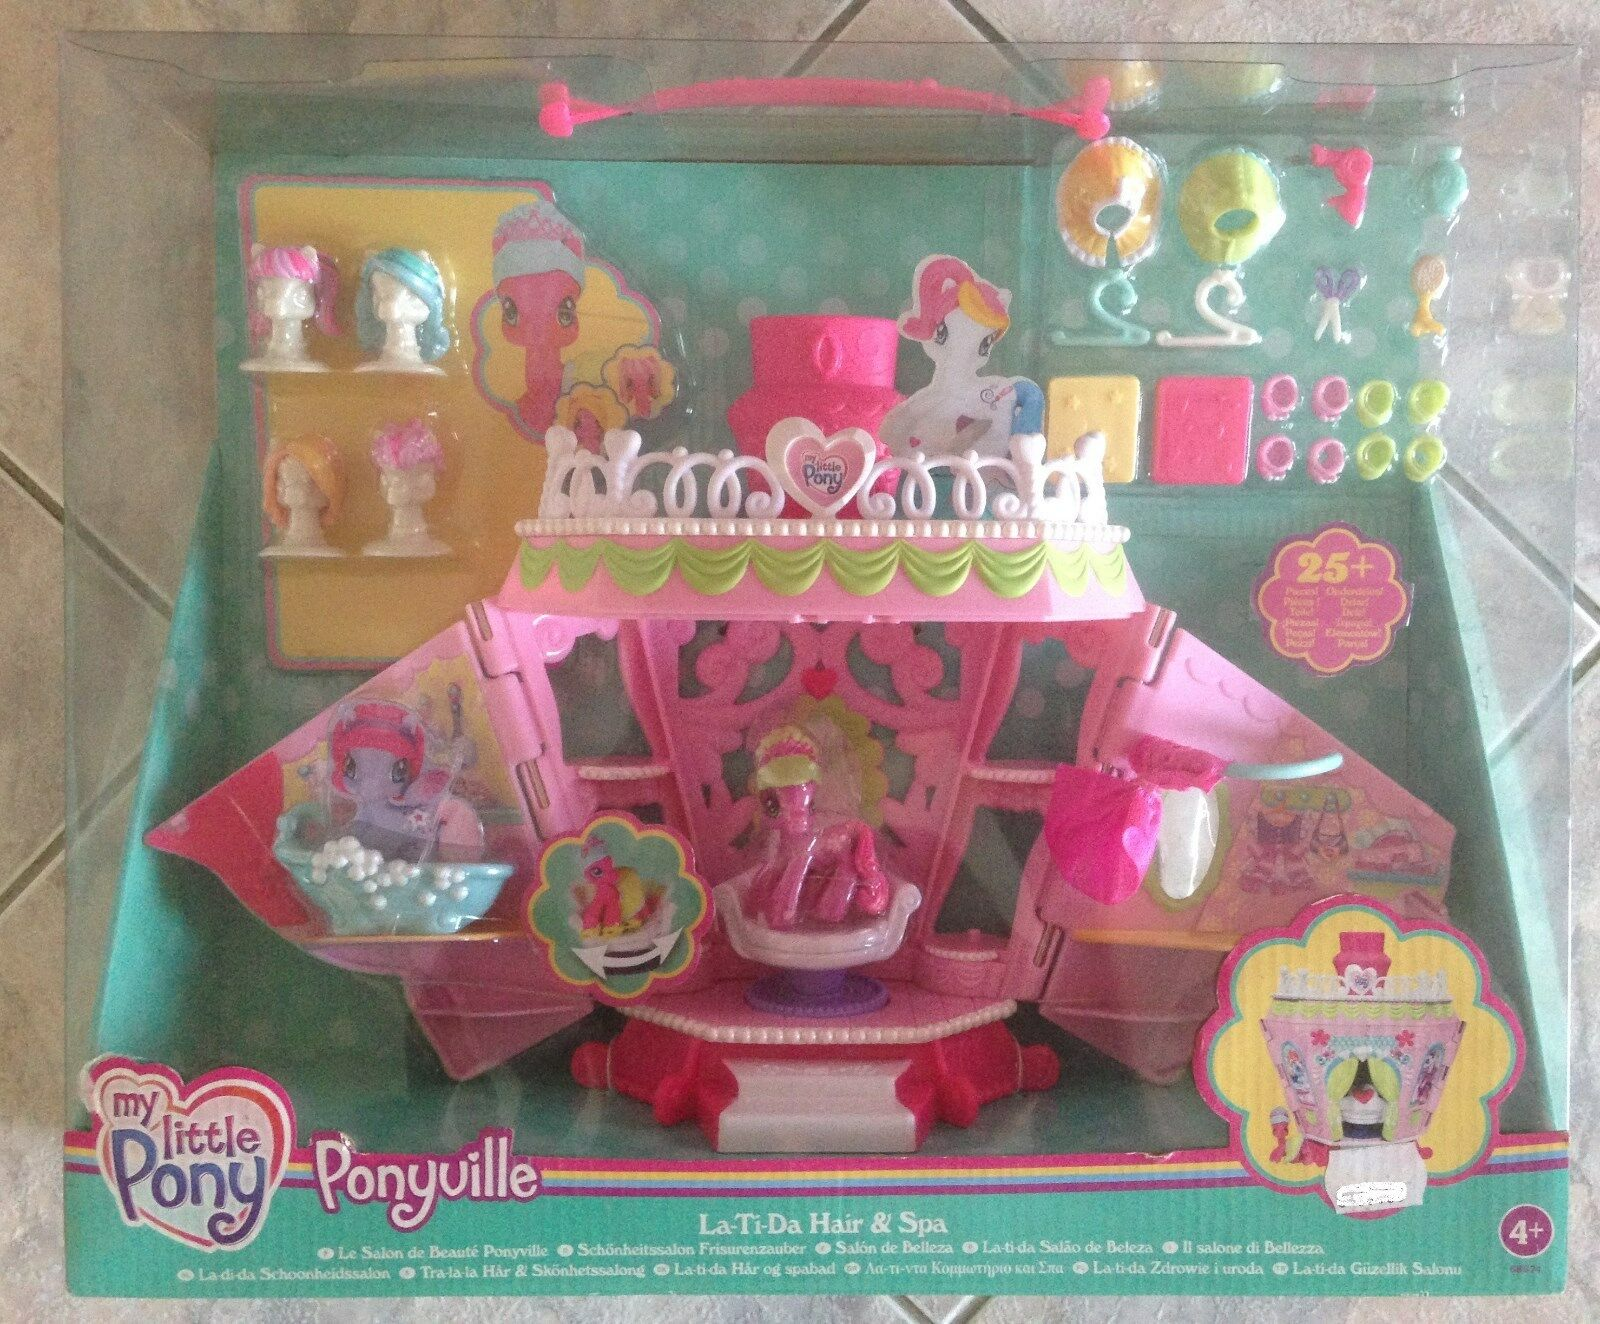 My Little Pony Ponyville La-Ti-Da Hair & Spa Salon Playset Cheerilee Wigs MIB